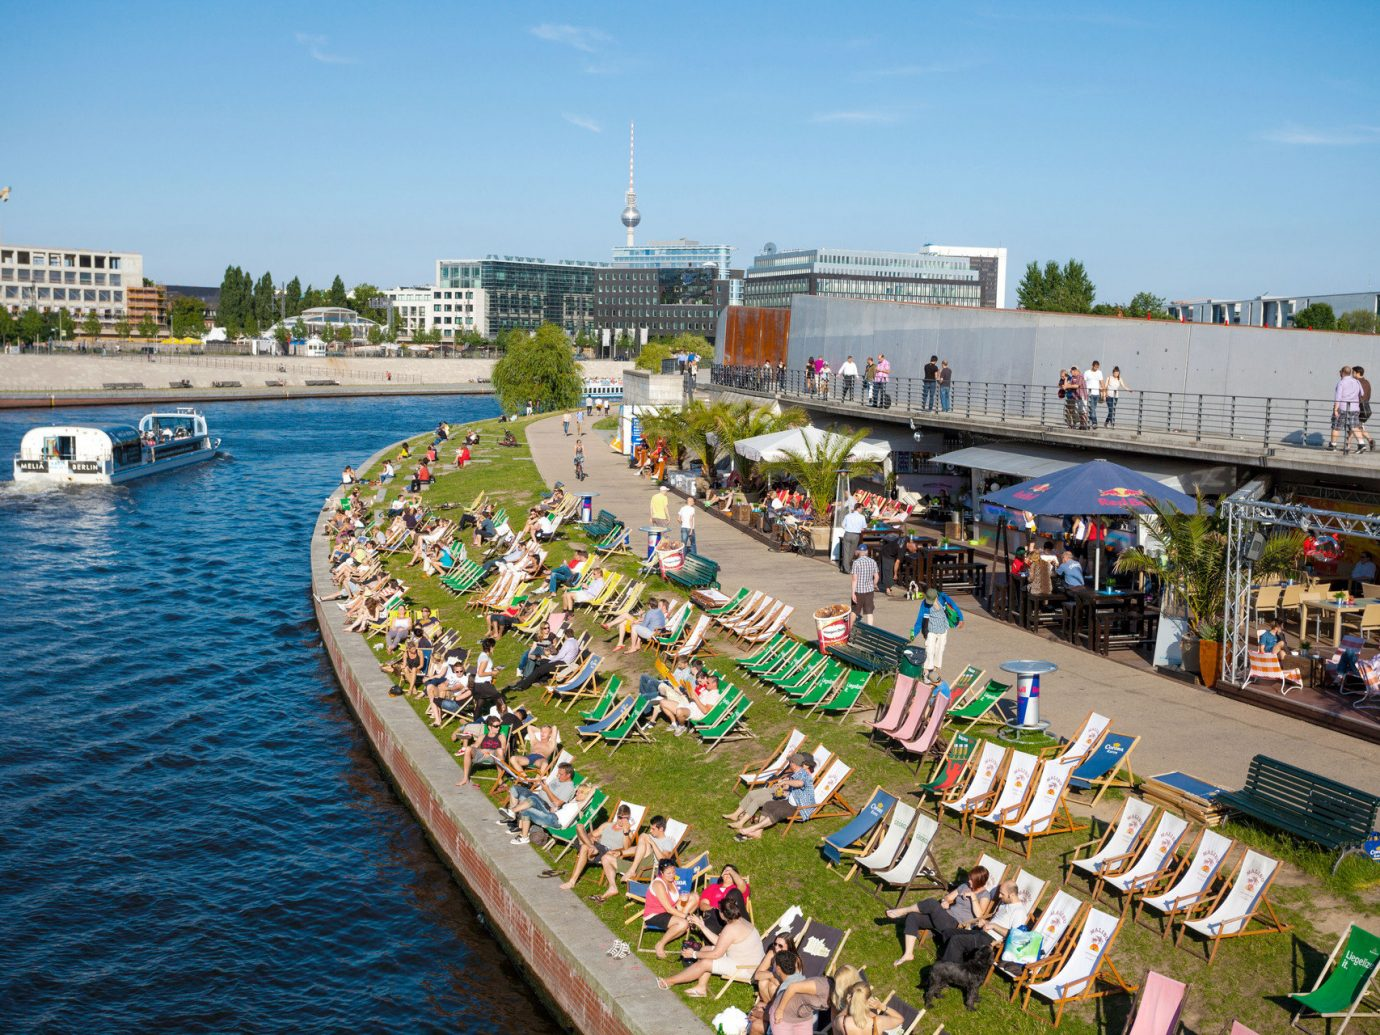 Berlin Germany Munich Trip Ideas sky water outdoor Boat walkway tourism waterway River boating endurance sports Water park boardwalk marina Harbor